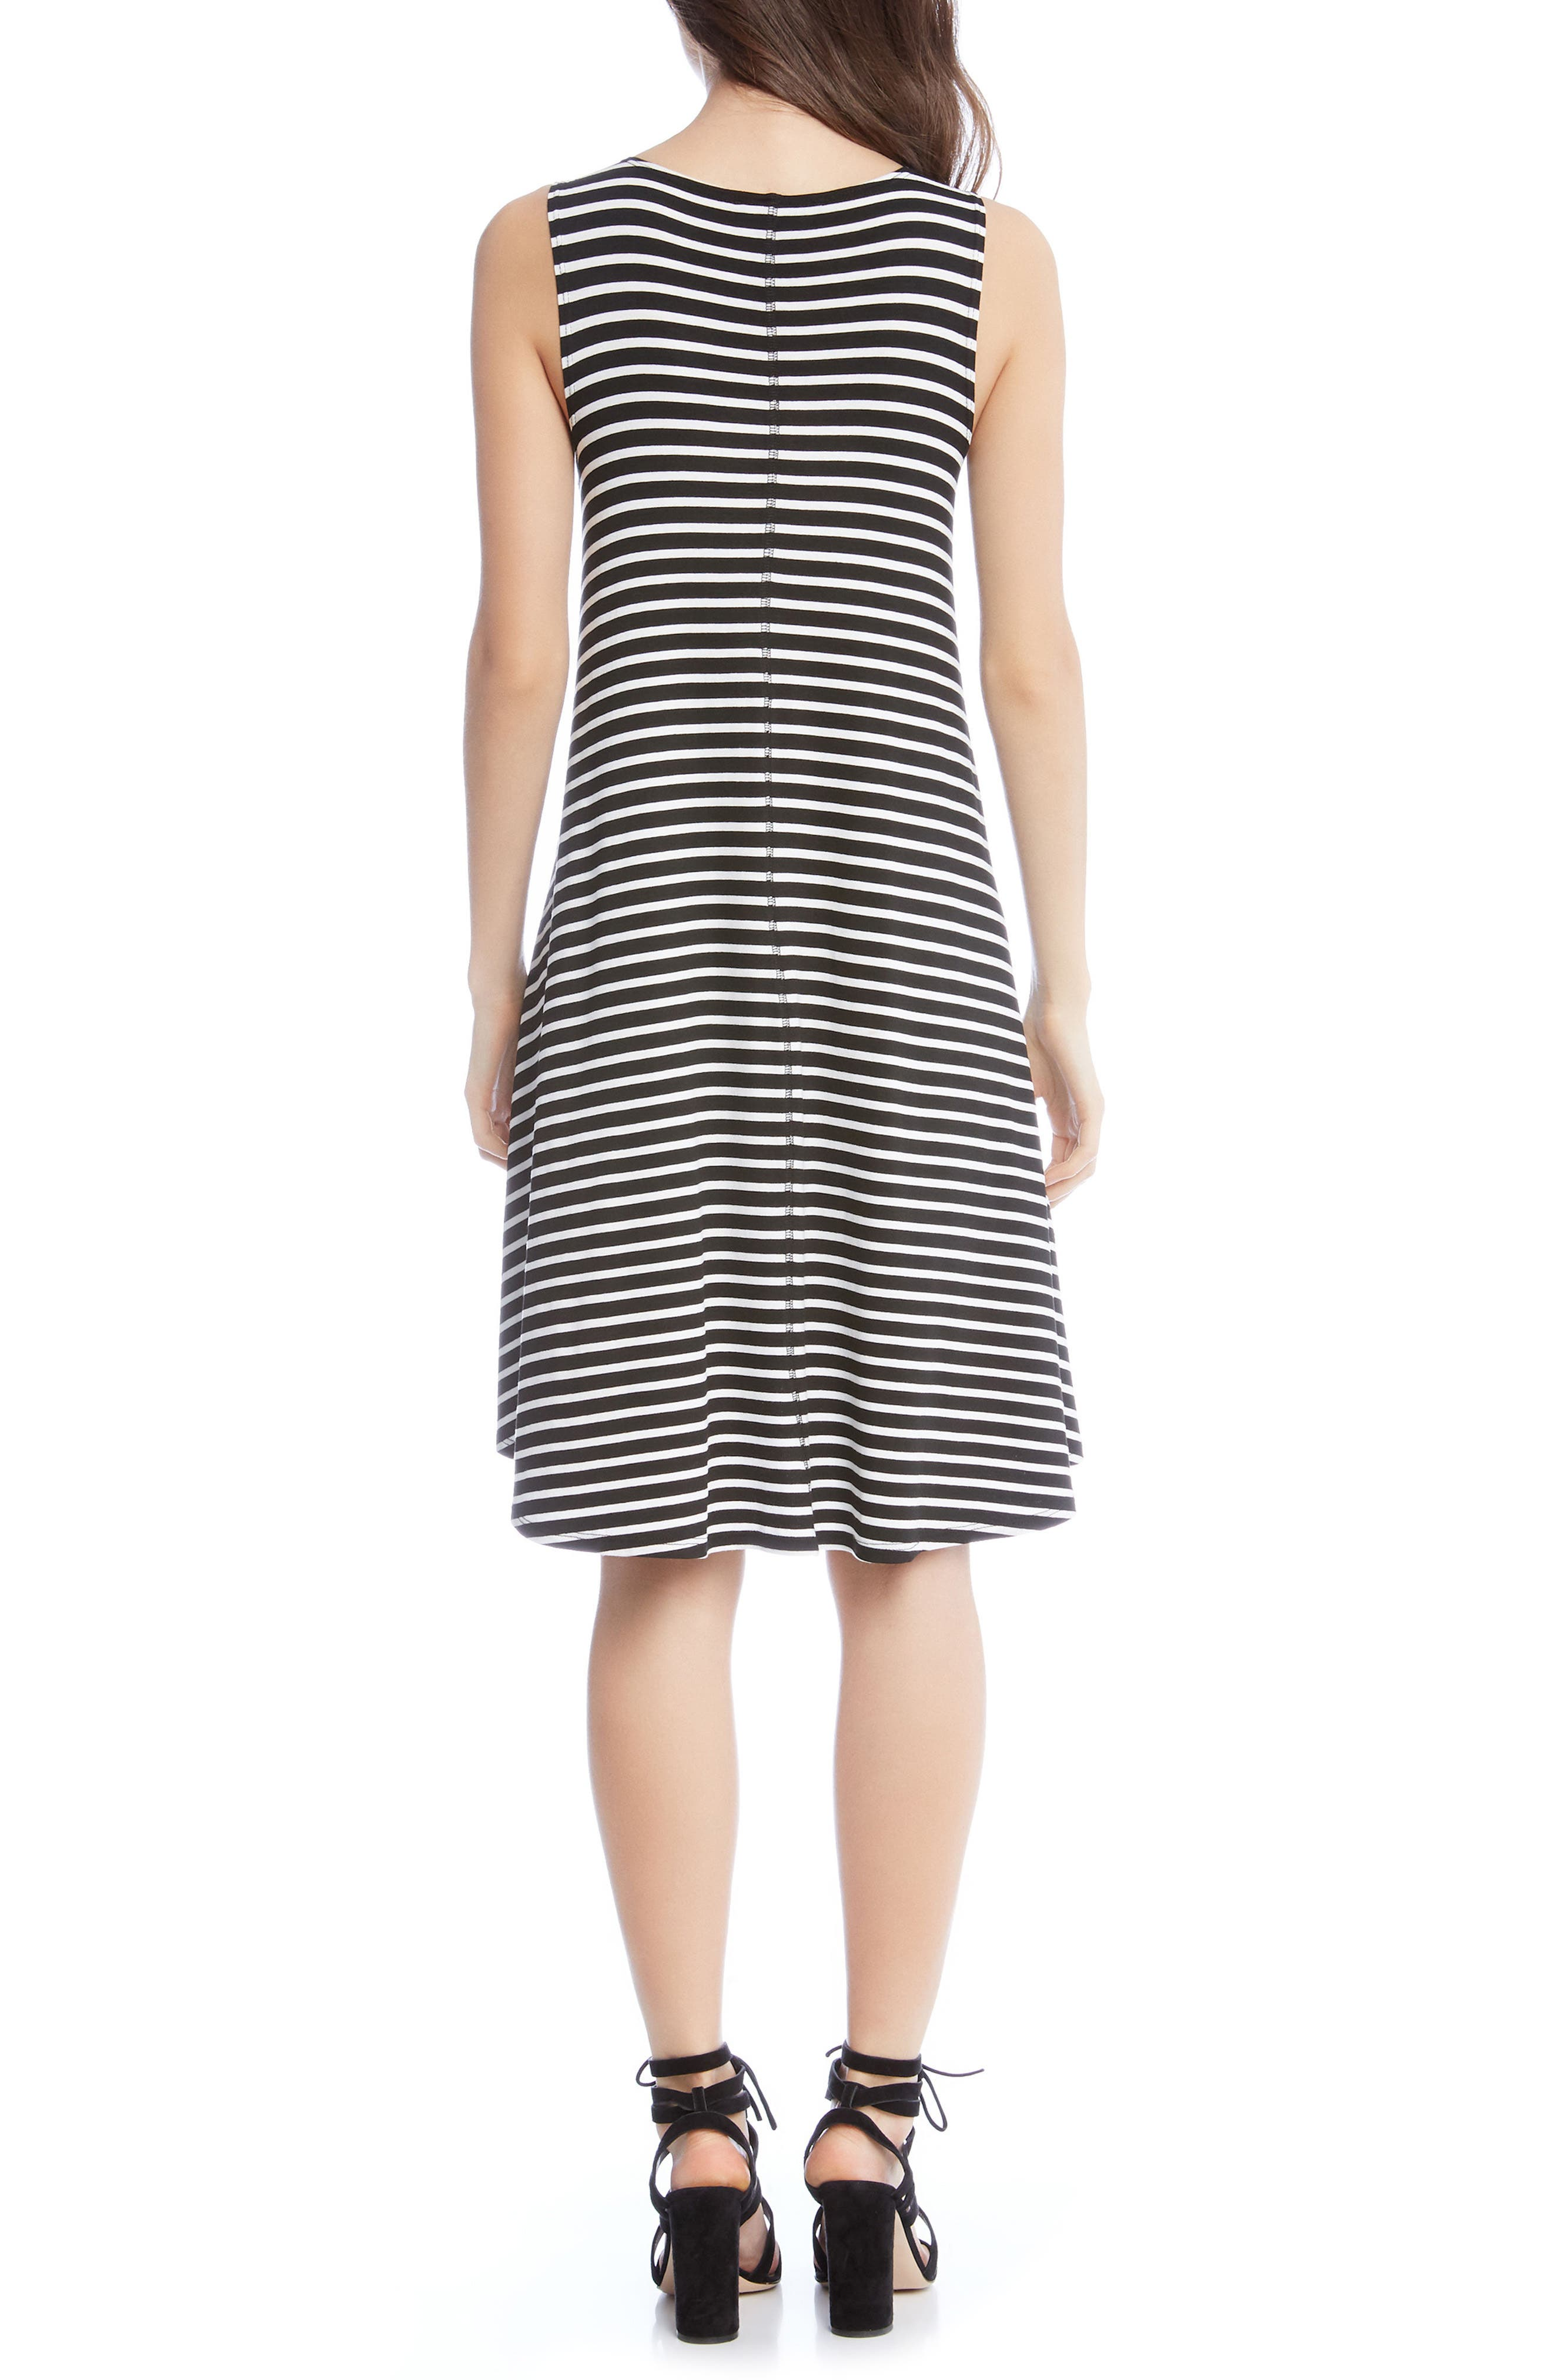 KAREN KANE,                             Stripe A-Line Dress,                             Alternate thumbnail 2, color,                             009